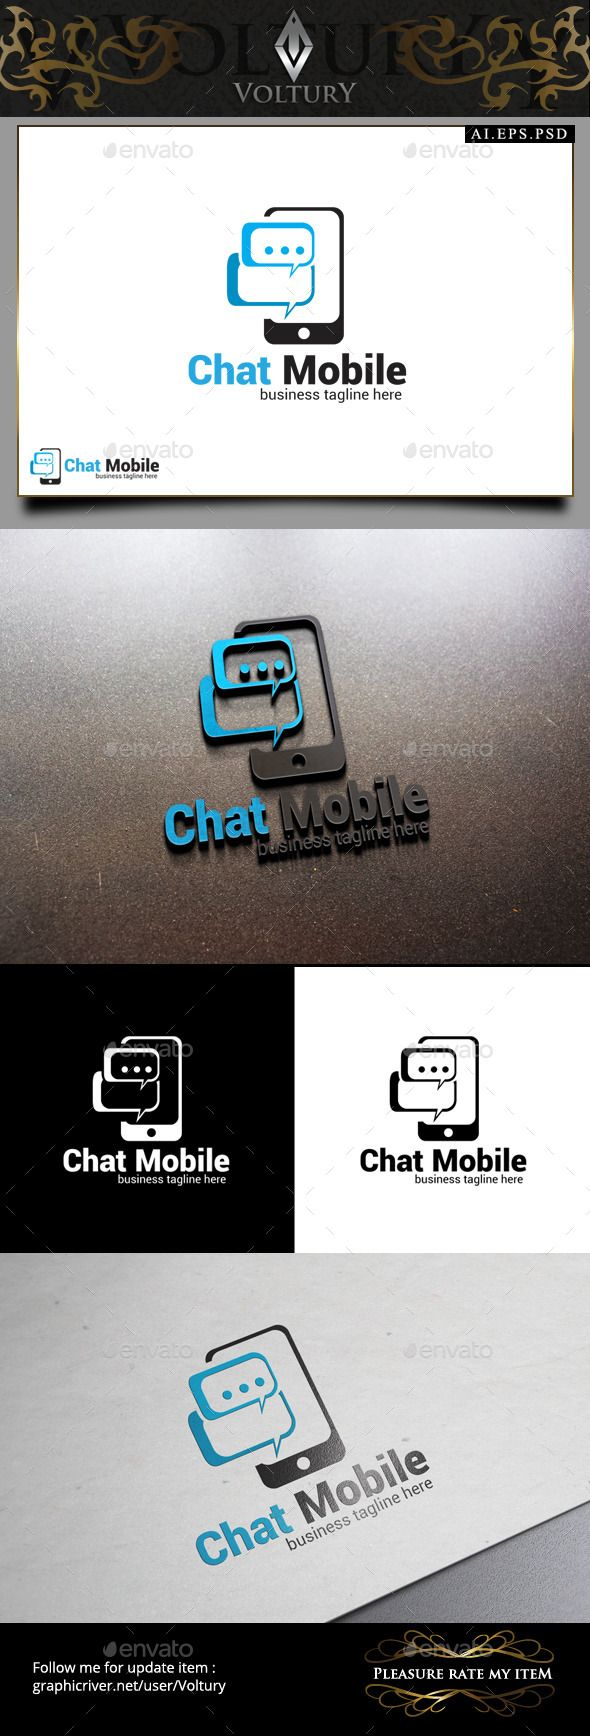 31 best company logo designs images on pinterest company logo chat mobile logo about item 100 vector ai in rgb and cmyk color biocorpaavc Image collections